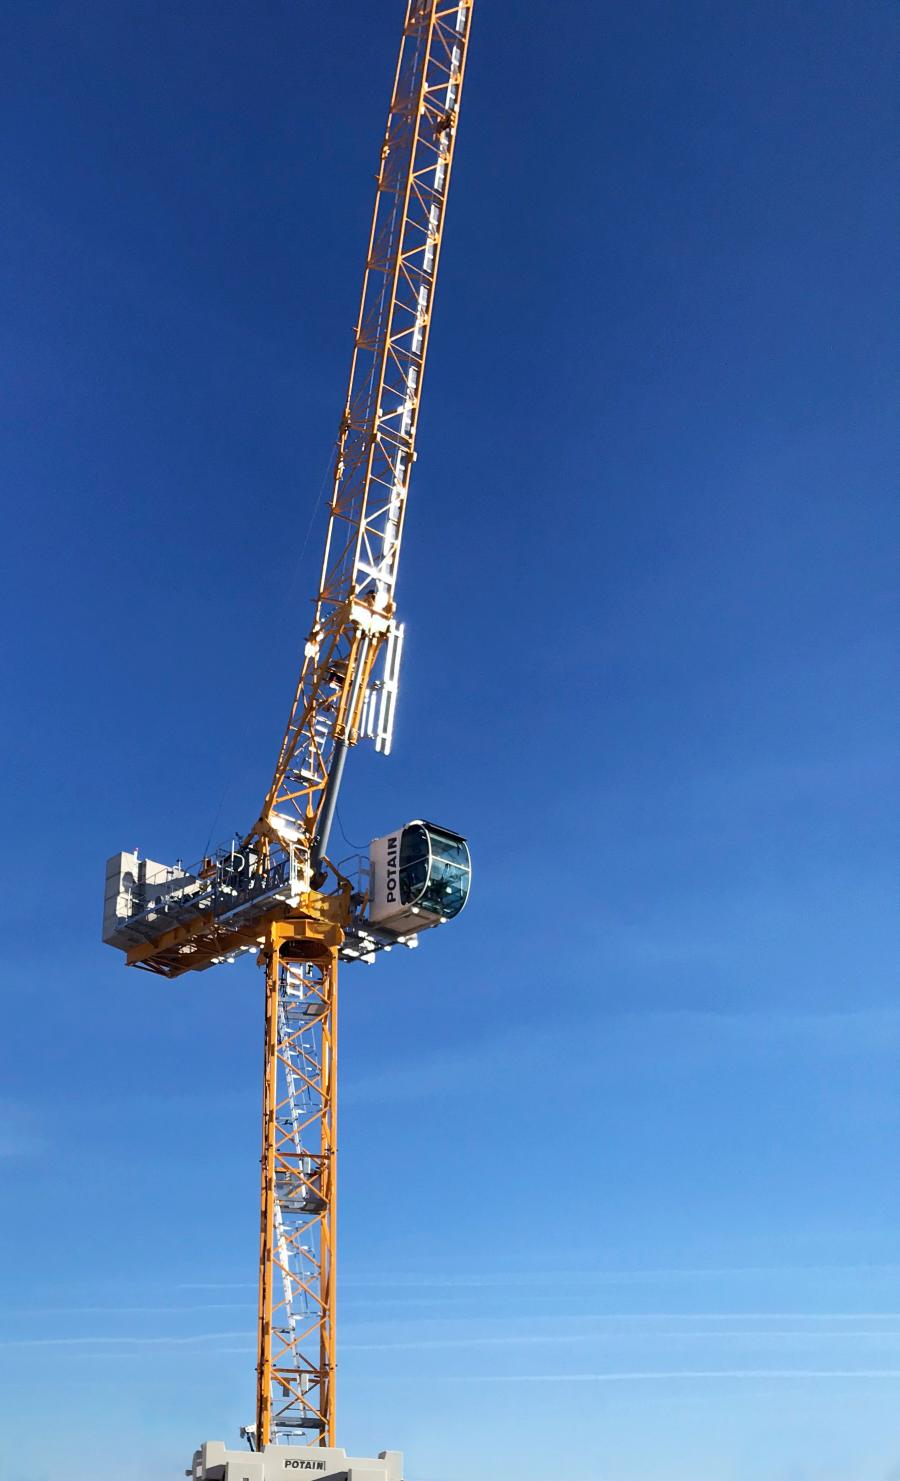 The MRH 175 is the latest release in Potain's line of hydraulic luffing jib cranes, a product line the company has continuously developed since unveiling the MRH 125 a year ago. The Hup M 28-22 is the third model from the groundbreaking Hup self-erecting crane range and the first to prioritize mobility.